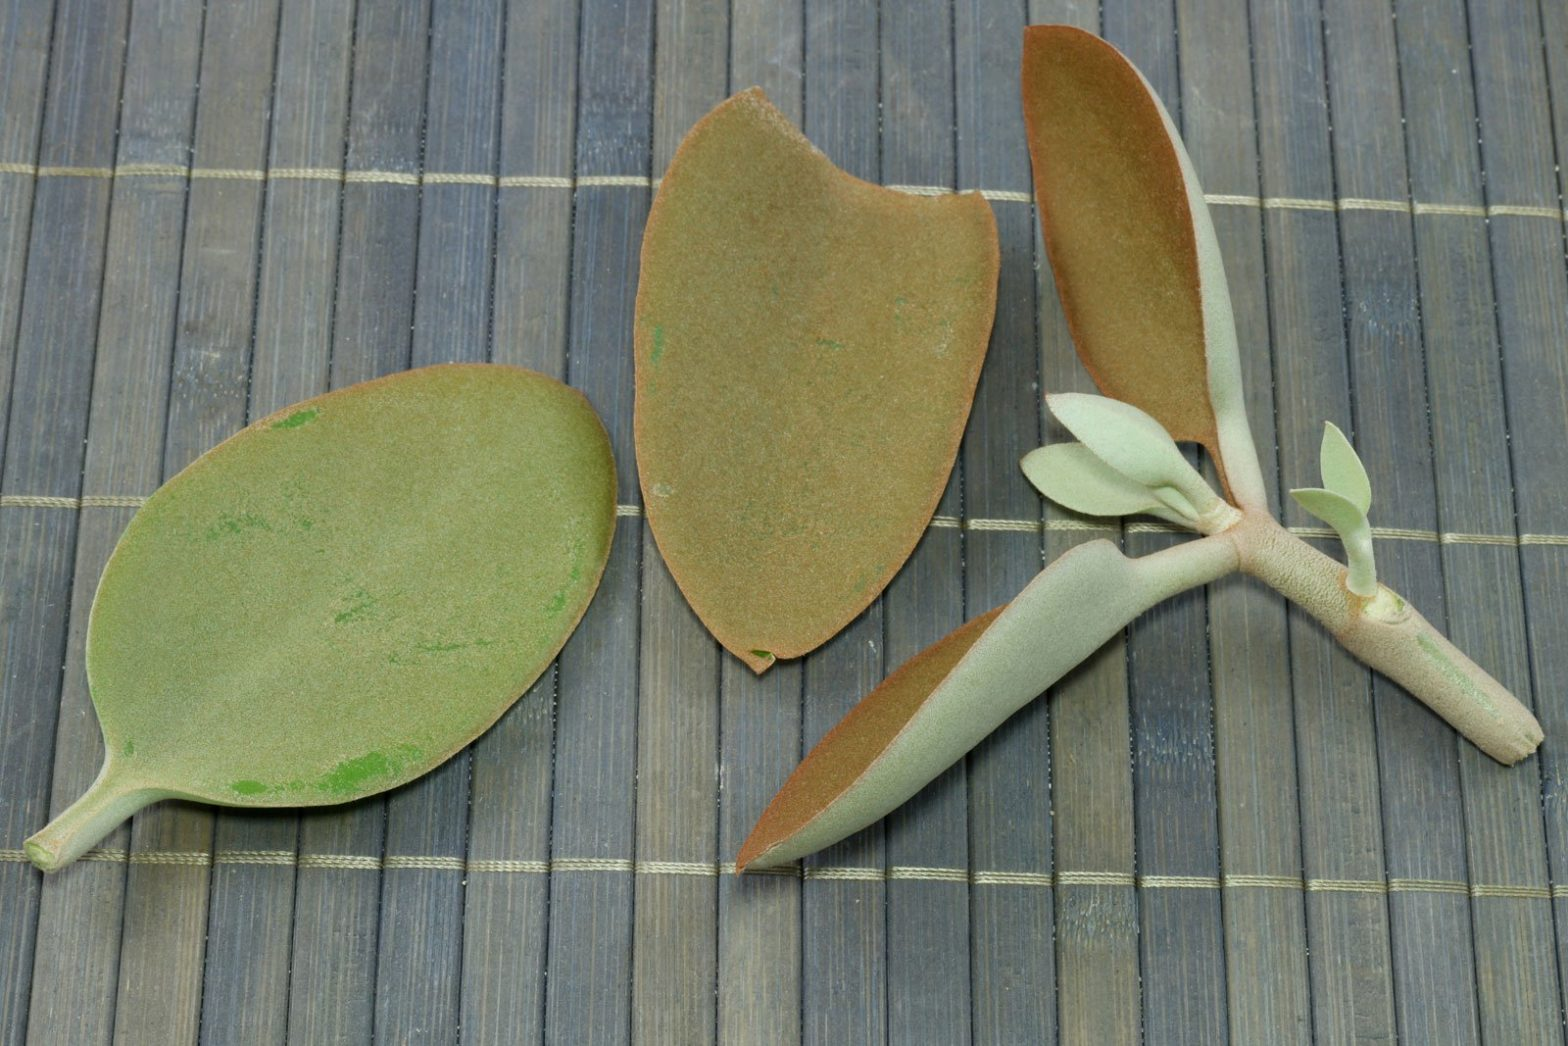 Copper Spoons cuttings